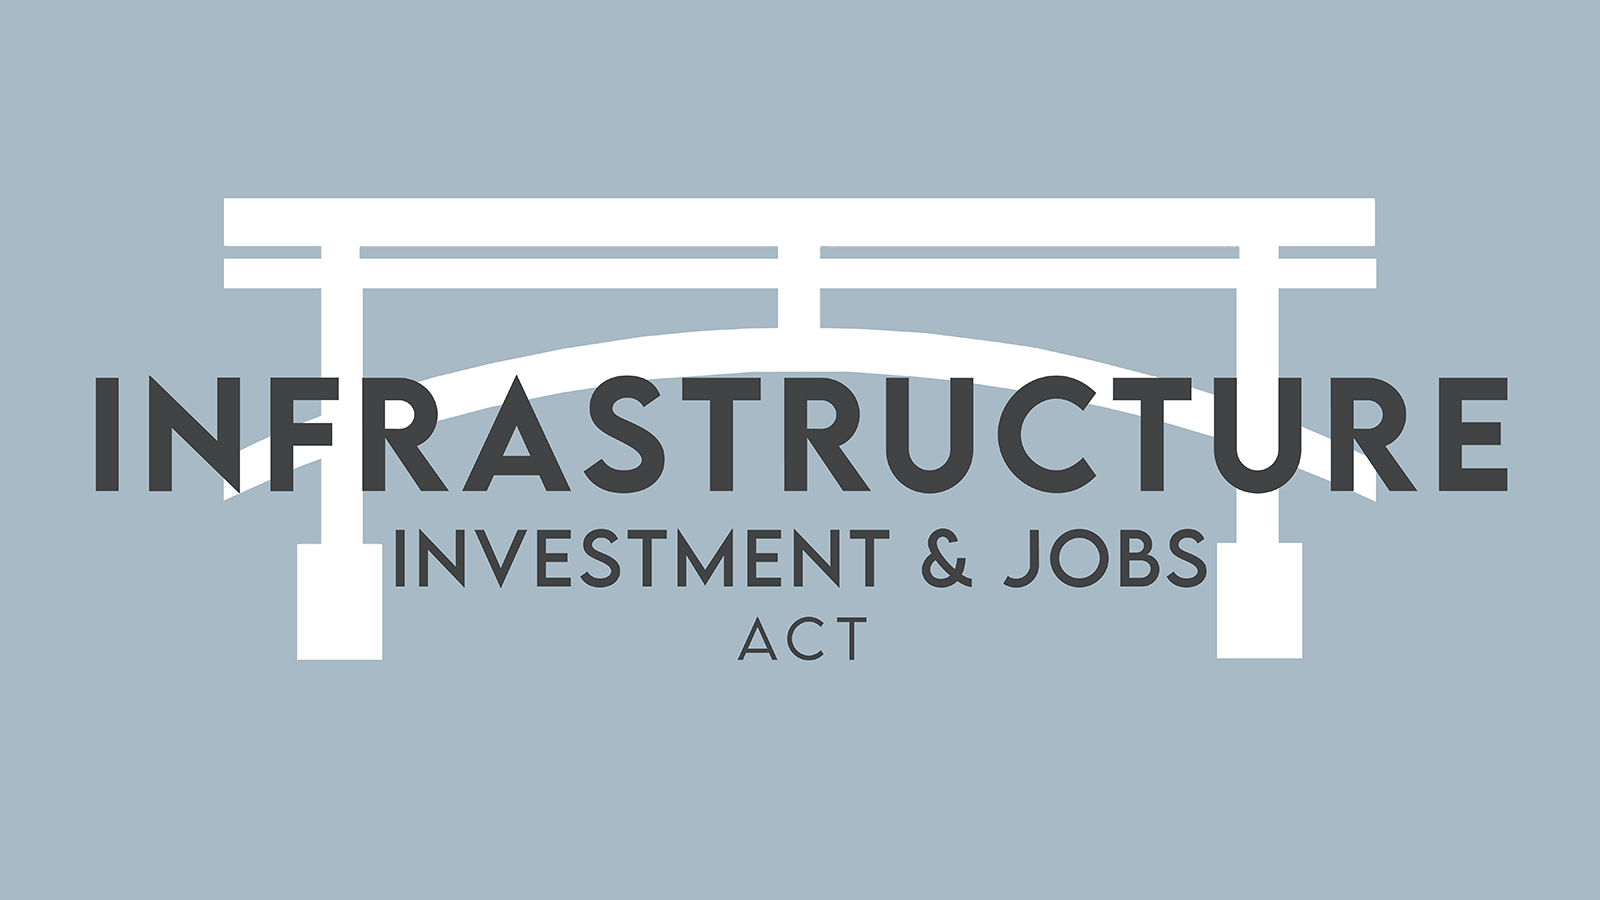 The Infrastructure Investment and Jobs Act of 2021 Doesn't Signal Much Change for Donors